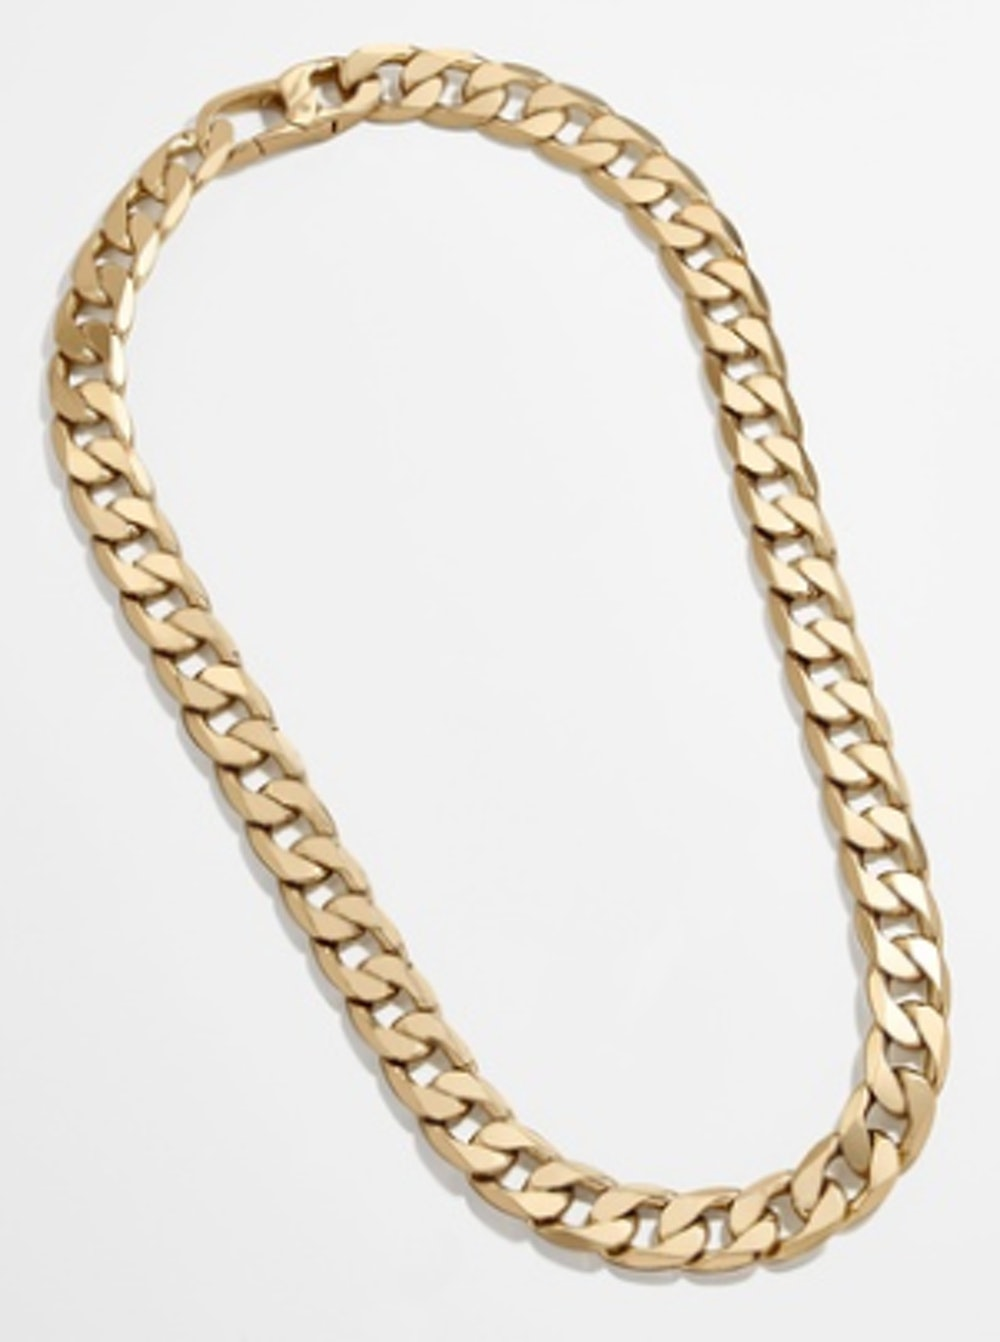 Large Michel Curb Chain Necklace